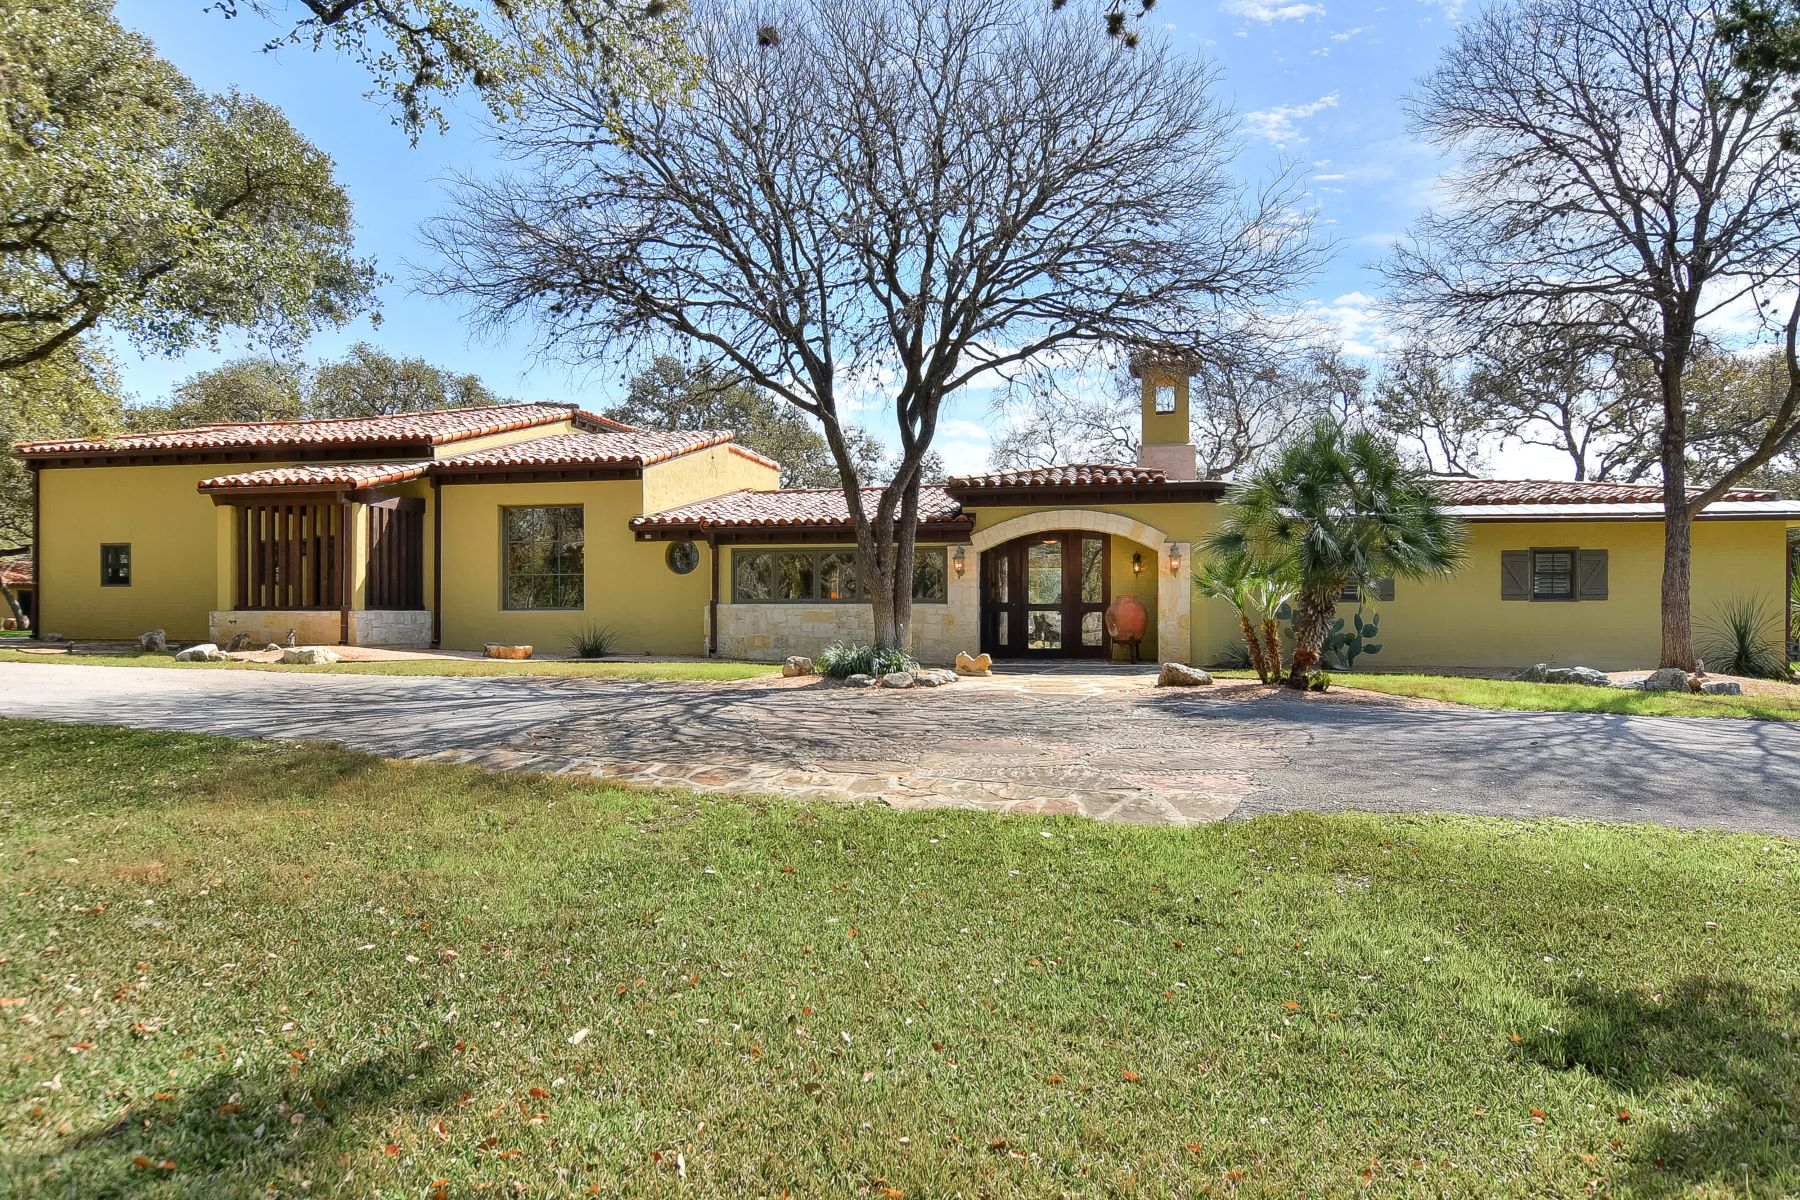 Exquisite Villa Nestled On Over 5 Acres Within Coveted Hill County Village,  Fully Fenced With Gated Entry. Coupling Of Flow And Functionality  Highlighting ...